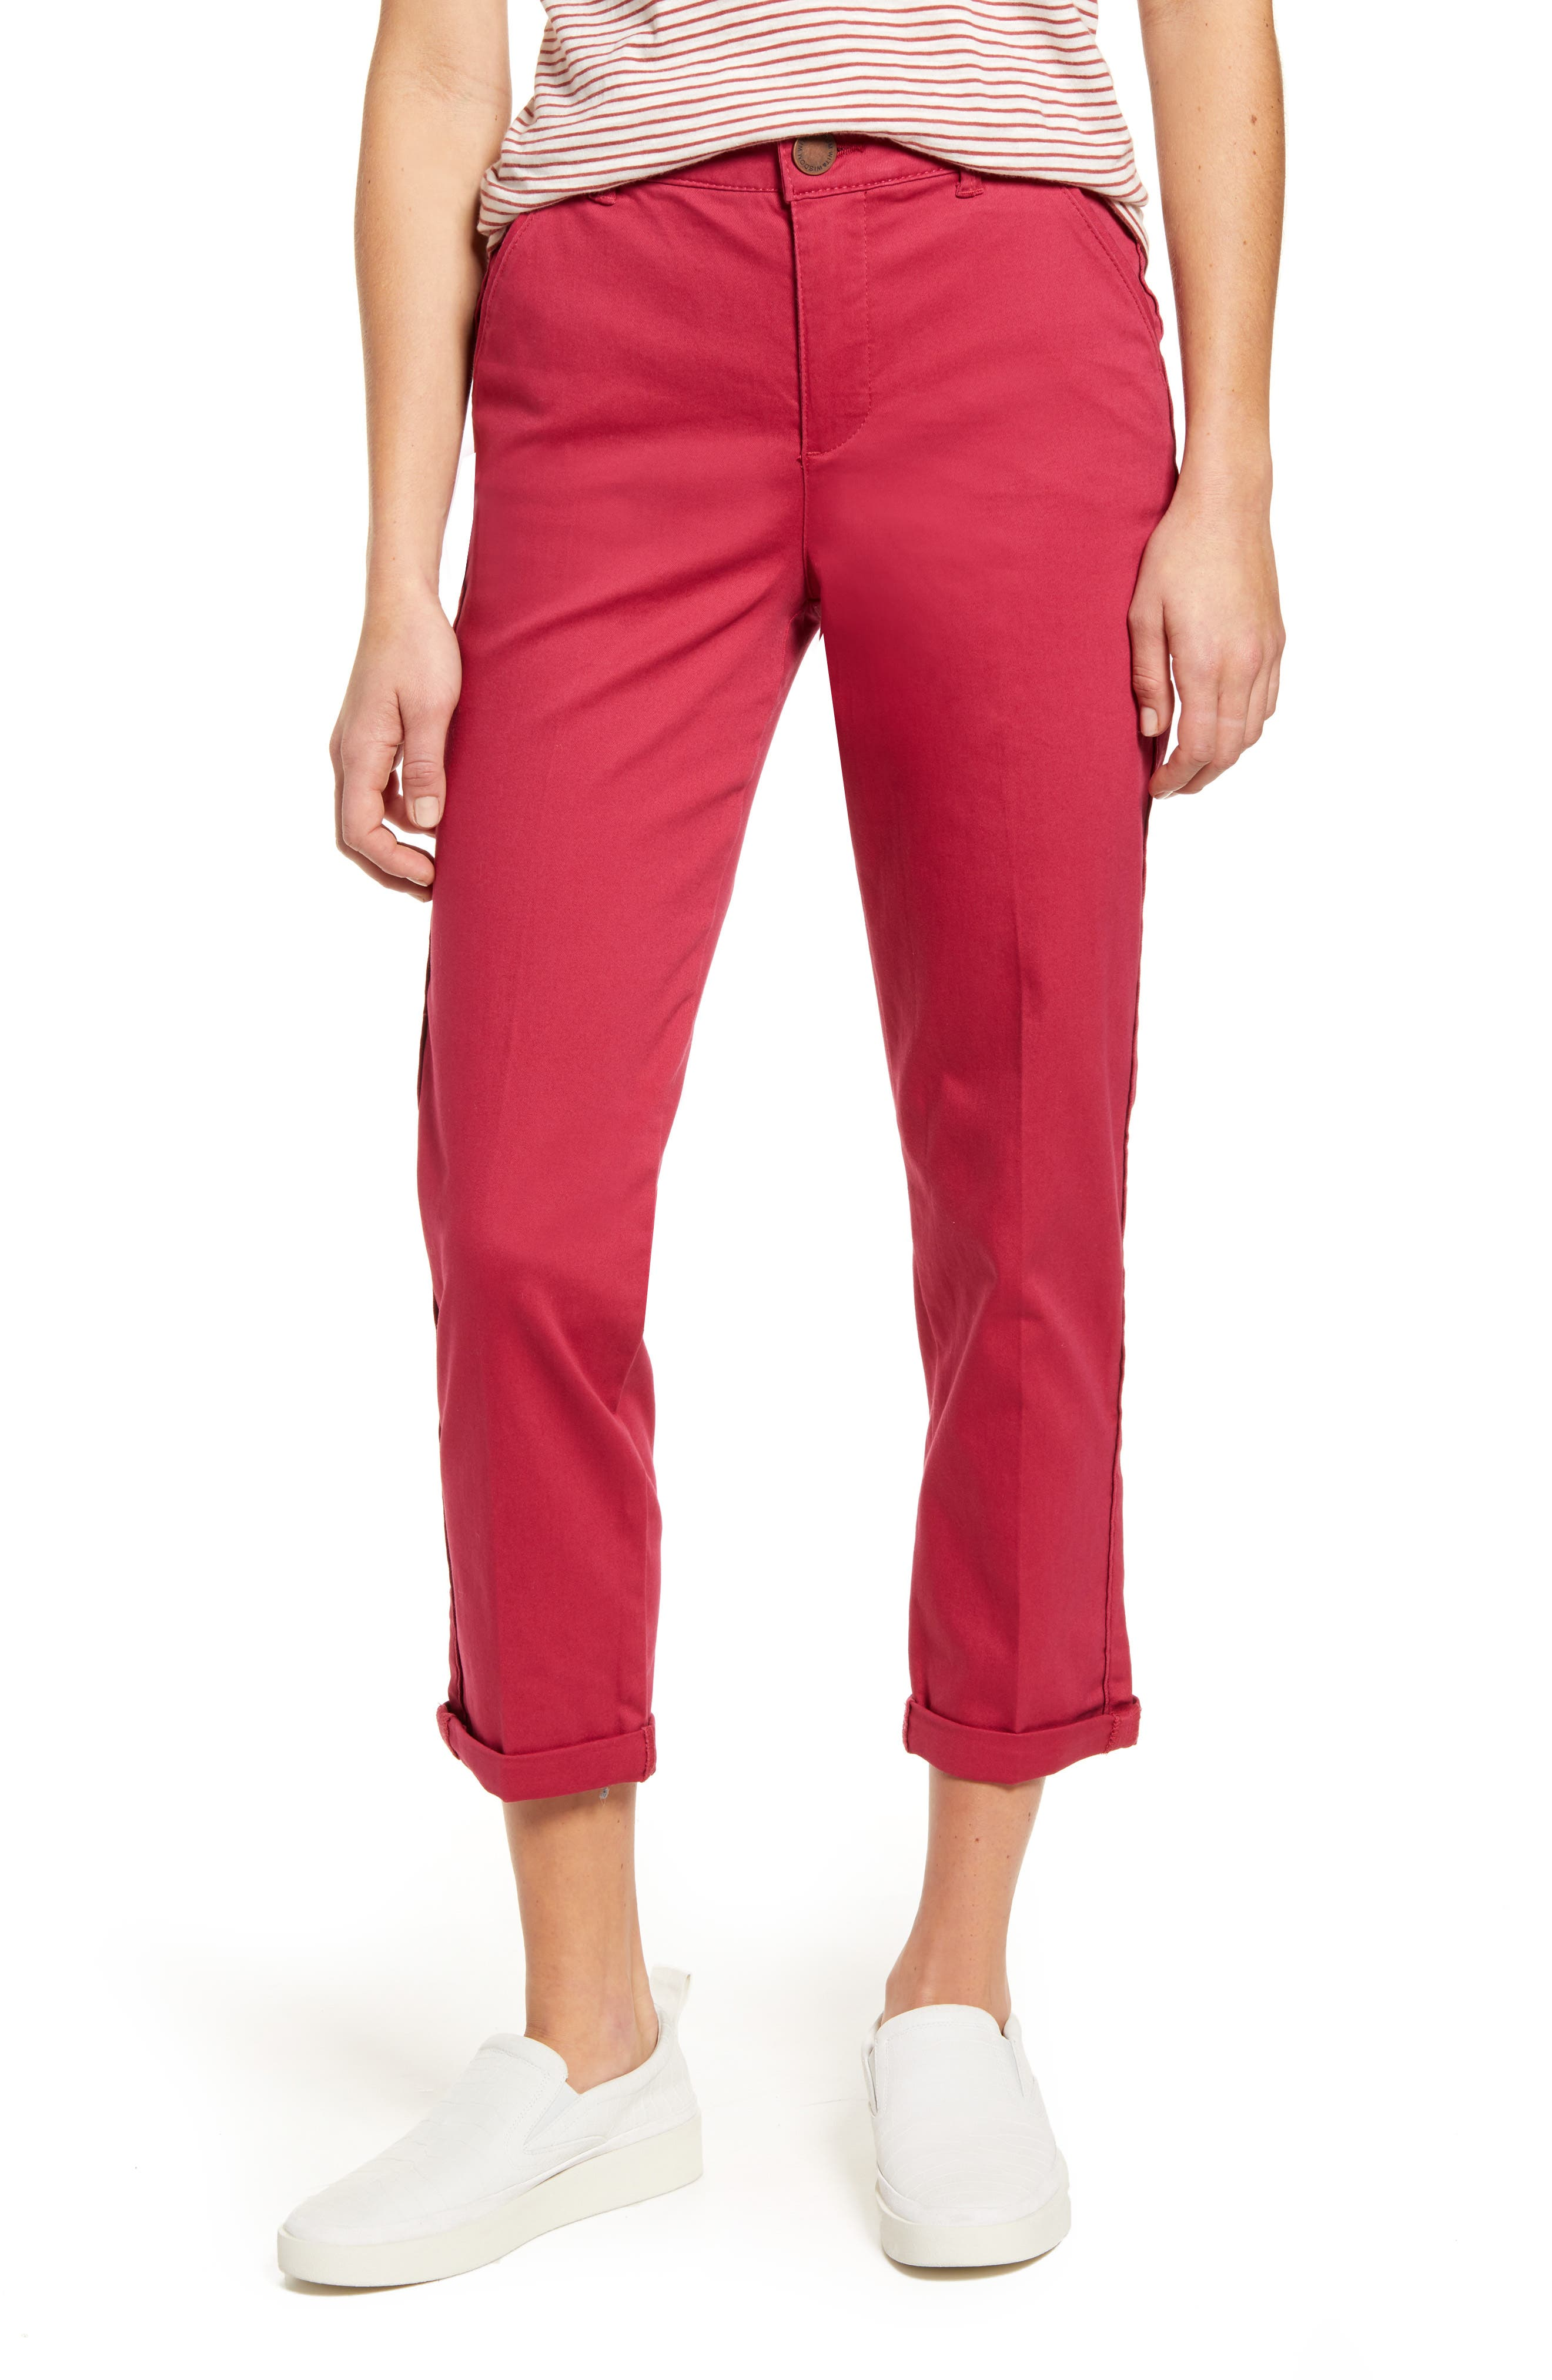 Take the next casual day in kicked-back comfort wearing these stretch cotton pants specially designed to mold, shape and hold with ease. Style Name: Wit & Wisdom Ab-Solution High Waist Roll Cuff Stretch Cotton Trousers (Nordstrom Exclusive). Style Number: 5996990. Available in stores.